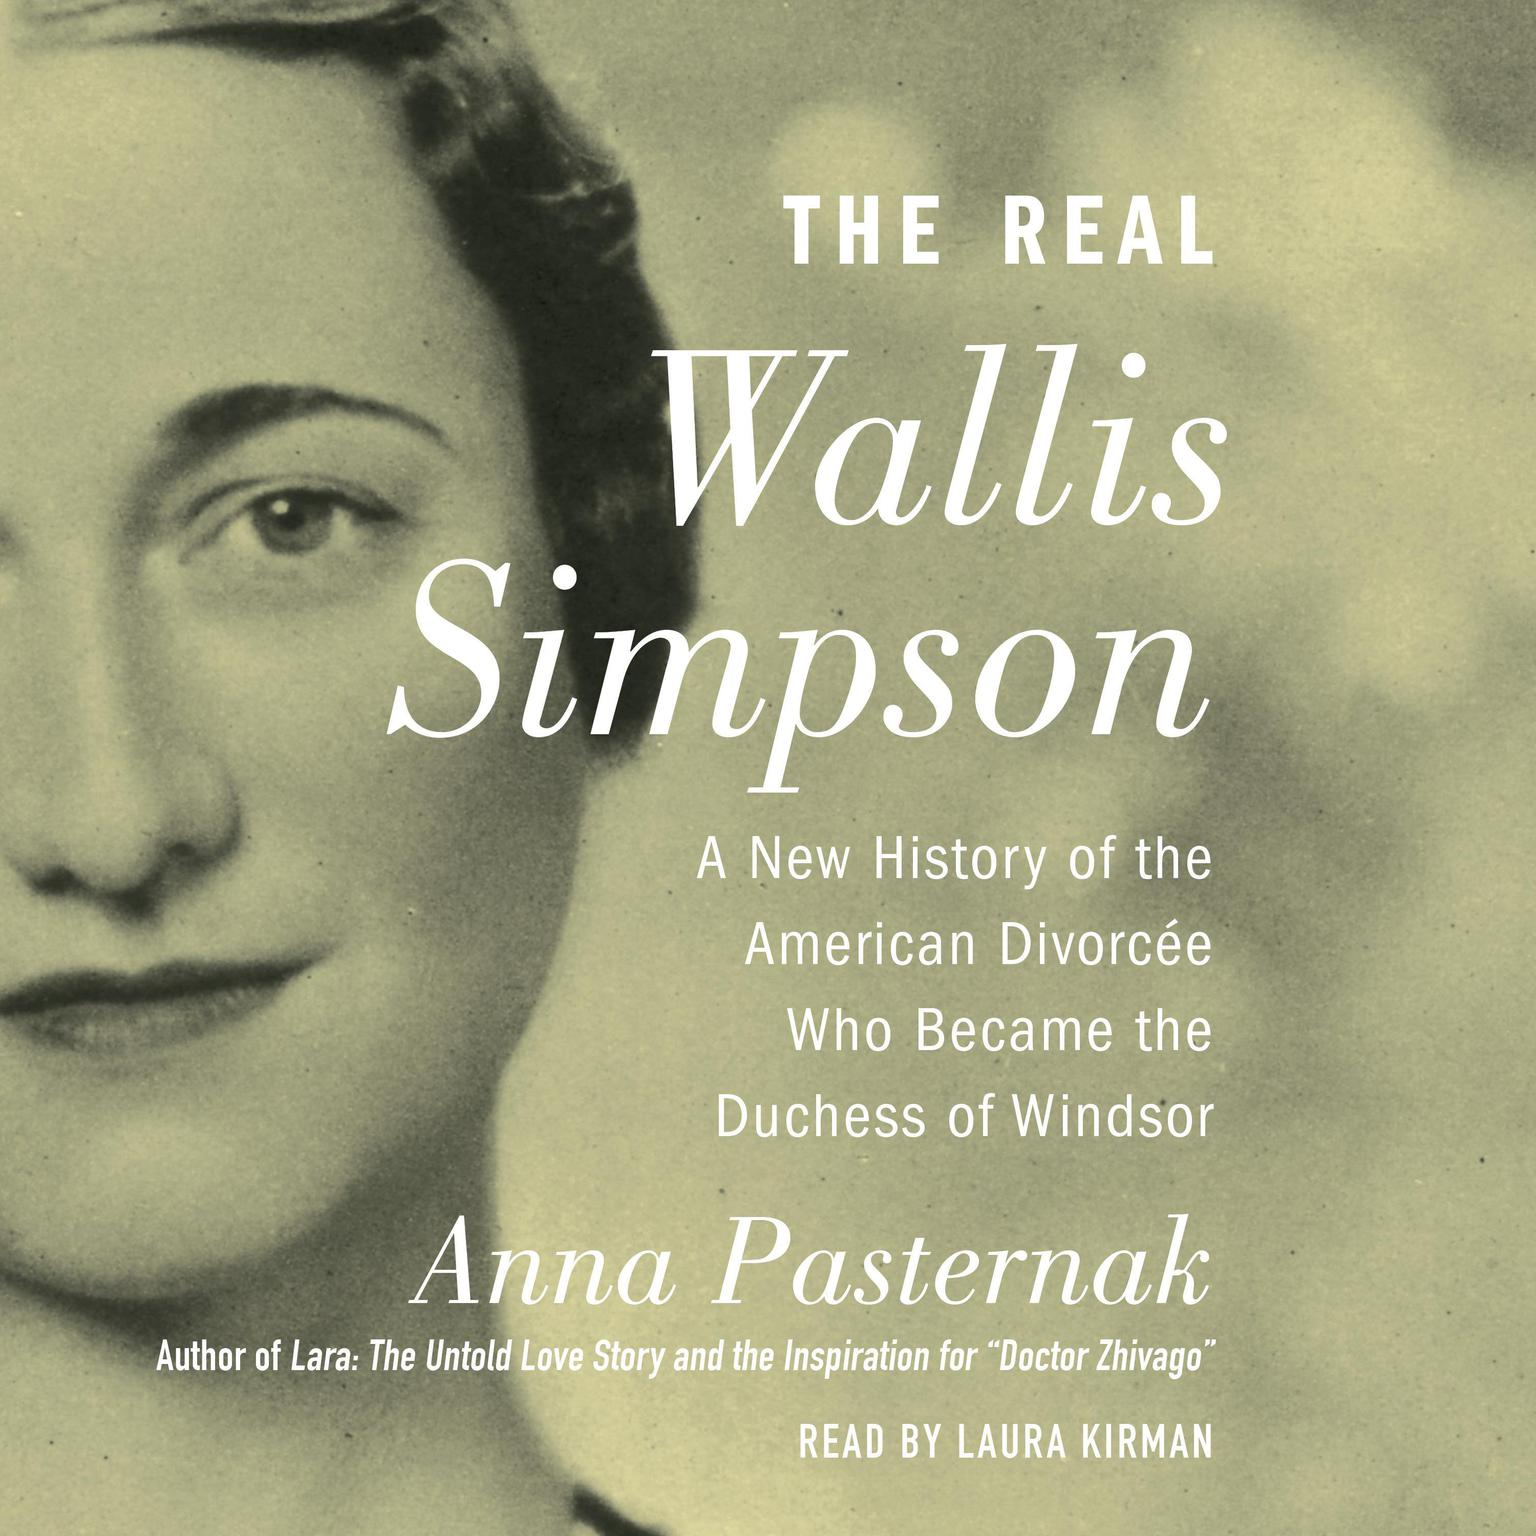 Printable The Real Wallis Simpson: A New History of the American Divorcee who became the Duchess of Windsor Audiobook Cover Art